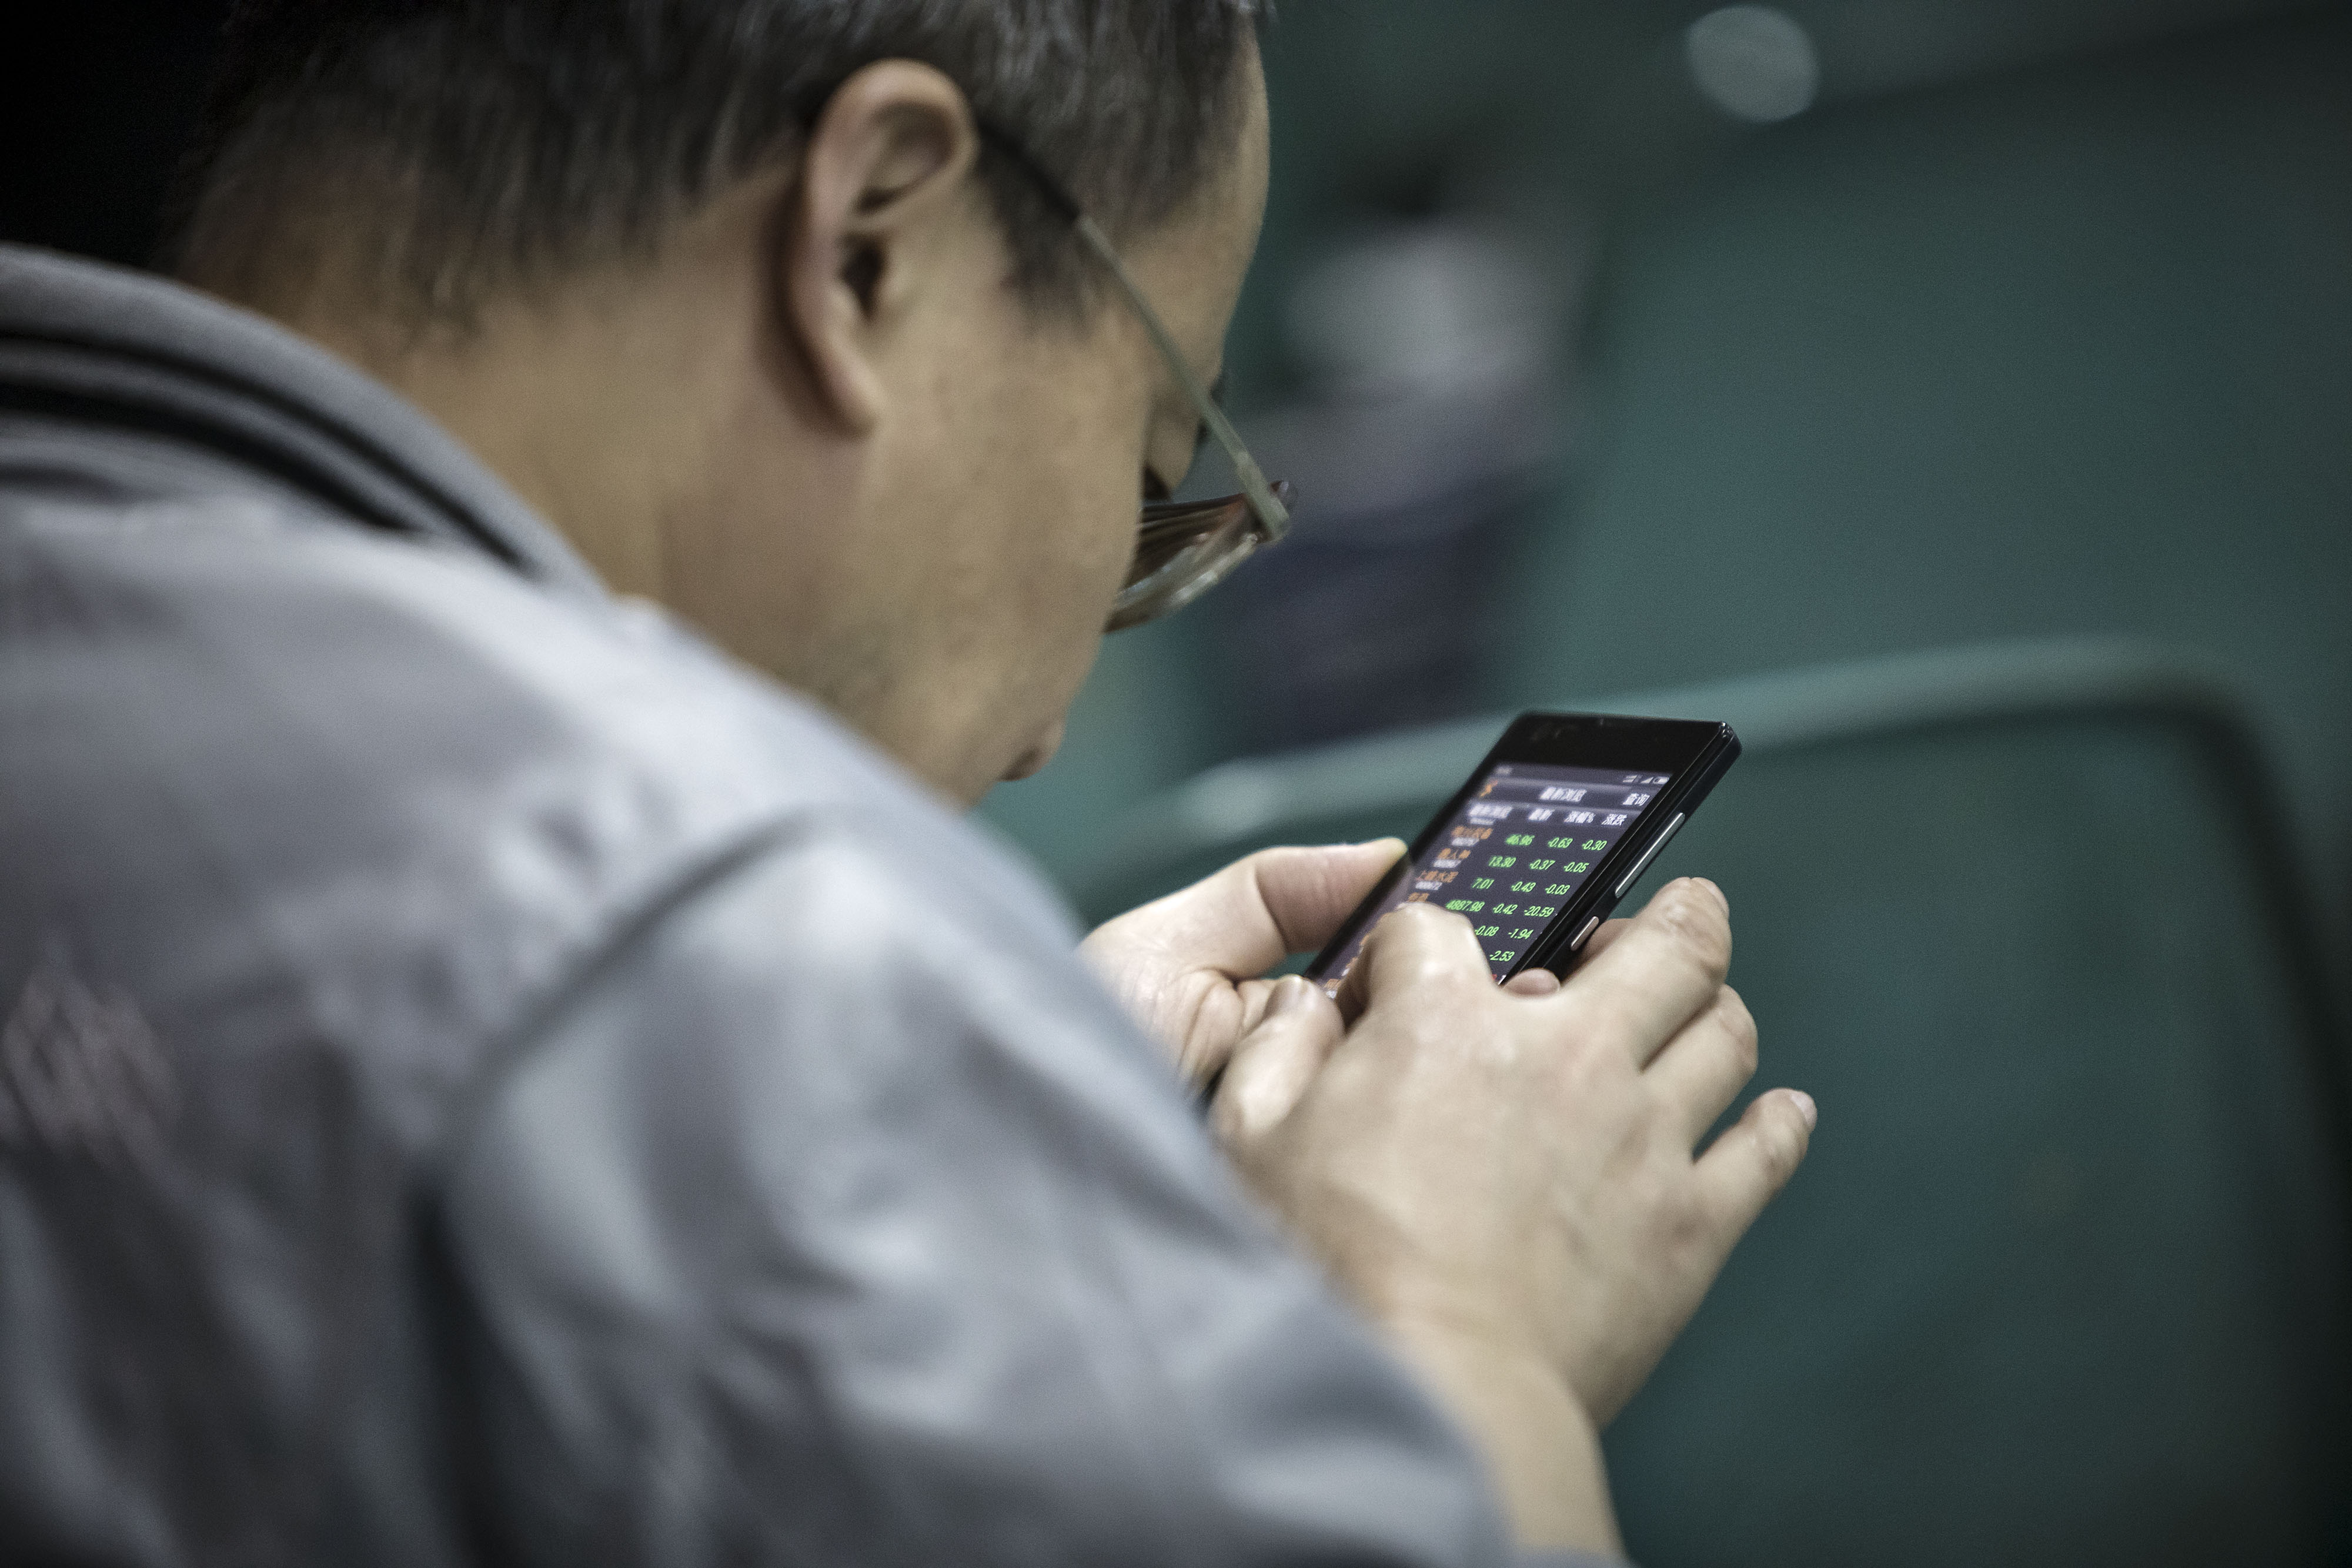 A man looks at share prices on a smartphone at a securities brokerage in Shanghai, China, on Wednesday, Nov. 9, 2016.